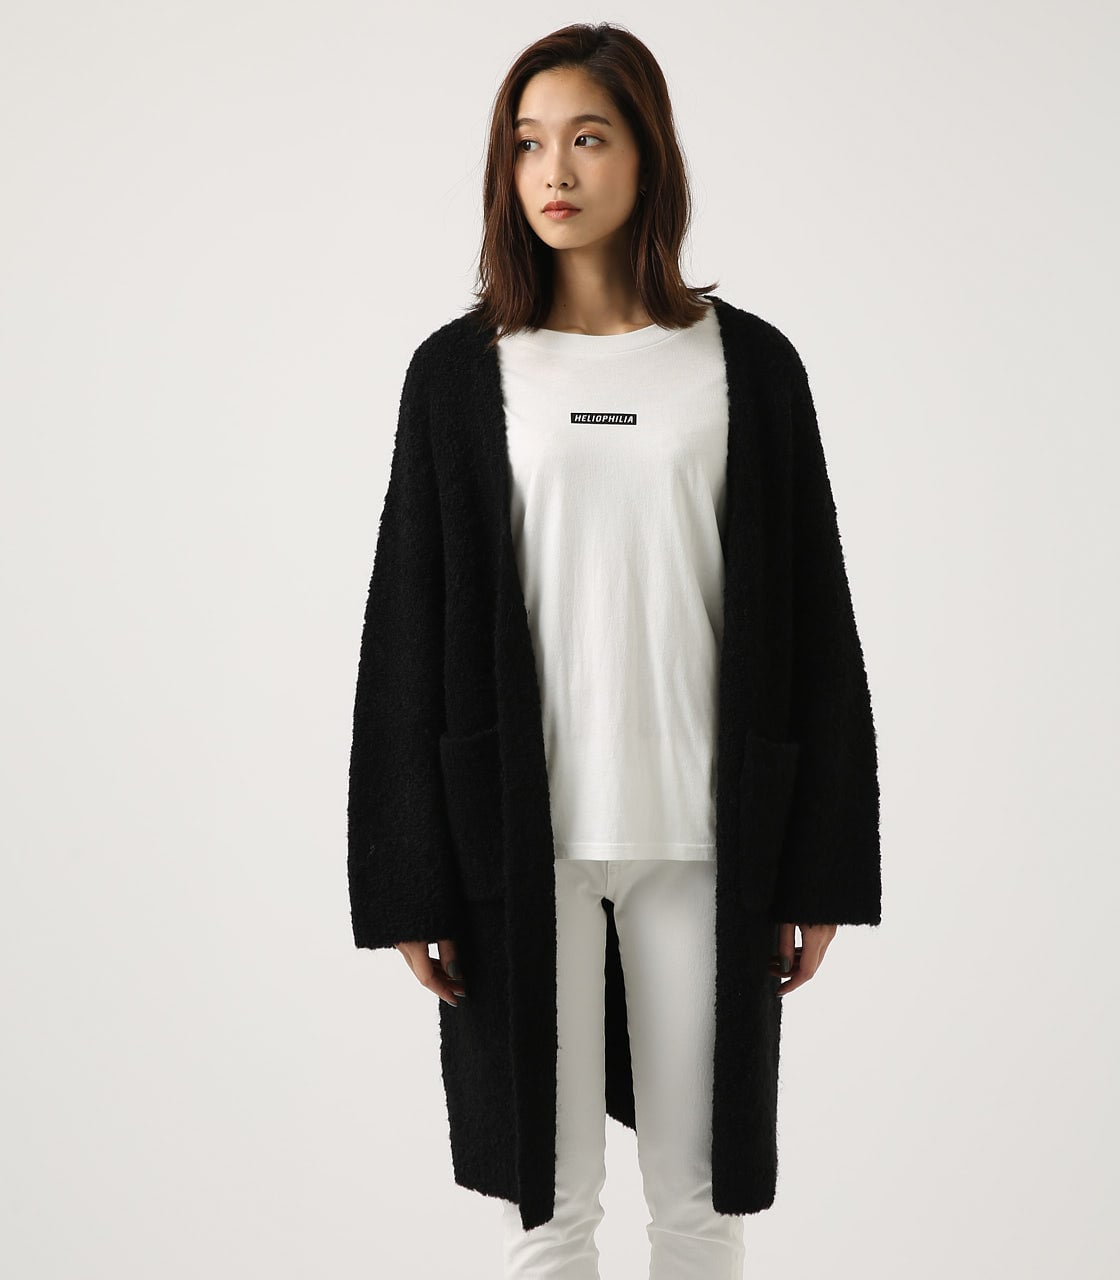 【AZUL BY MOUSSY】ブークレロングカーデ 詳細画像 BLK 5